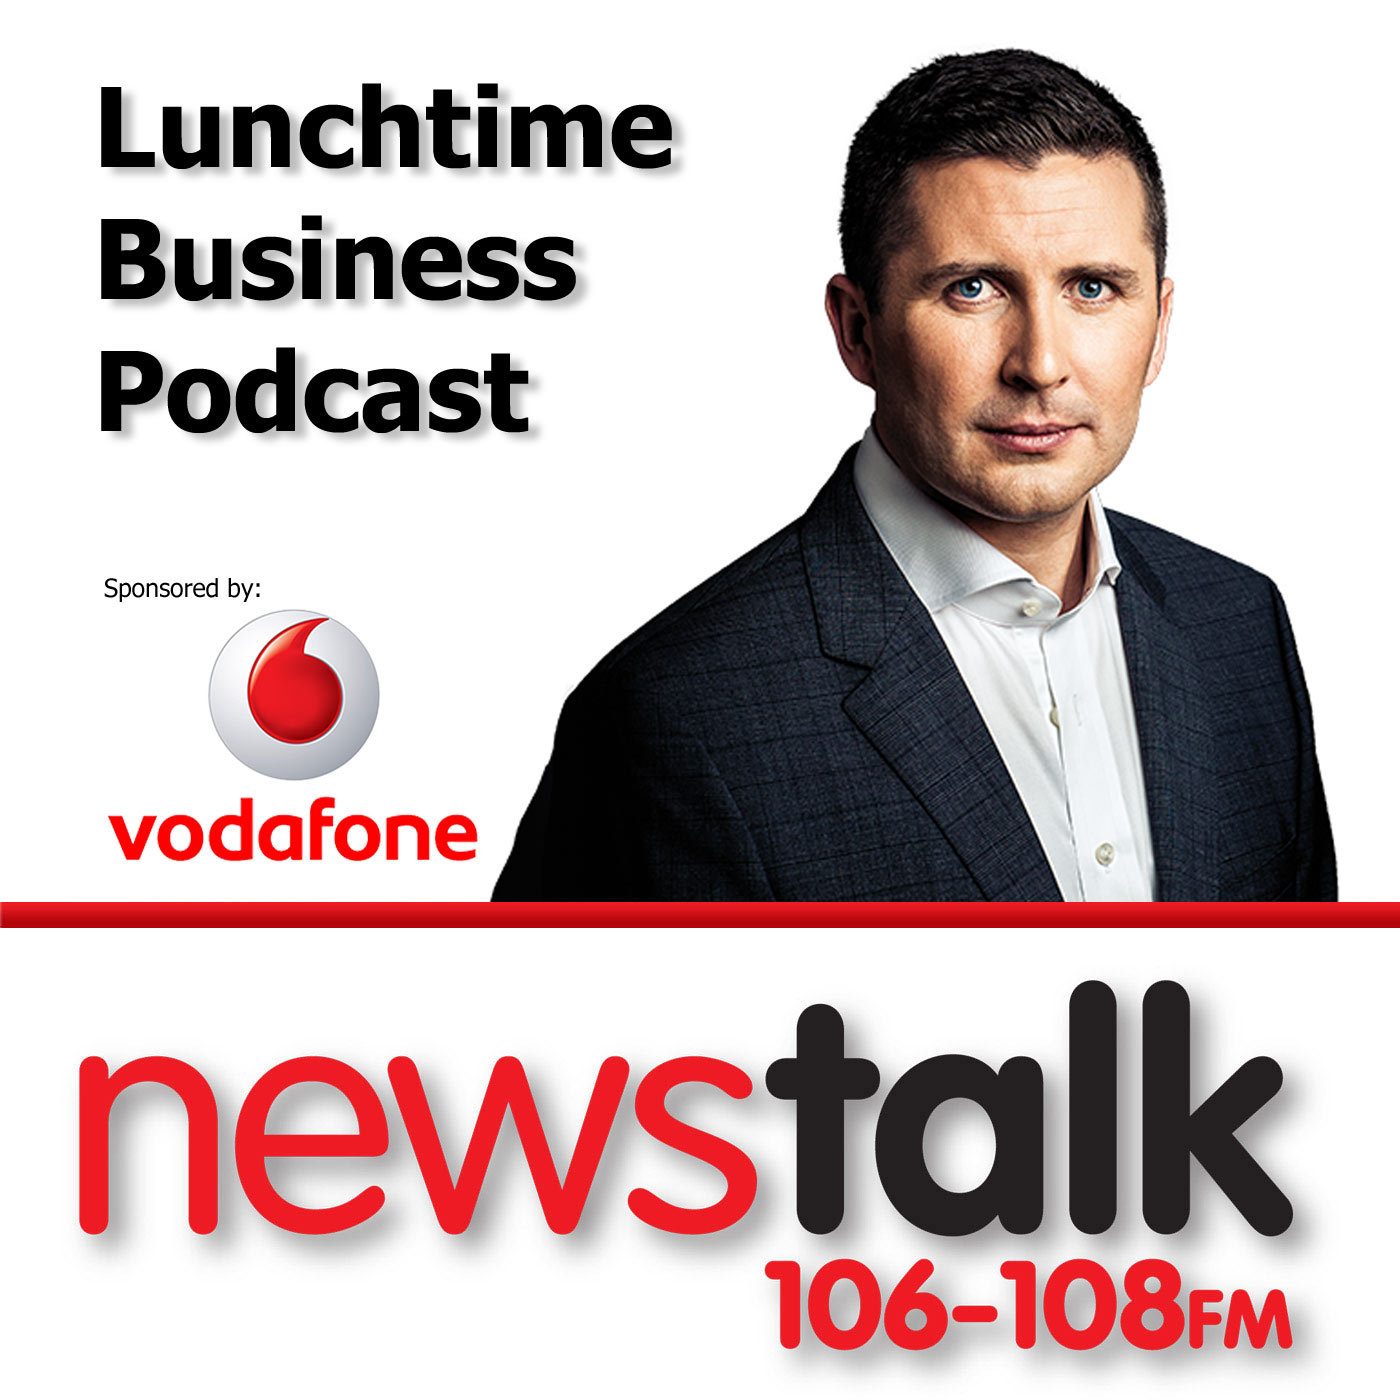 Newstalk Lunchtime Vodafone Business Podcasts